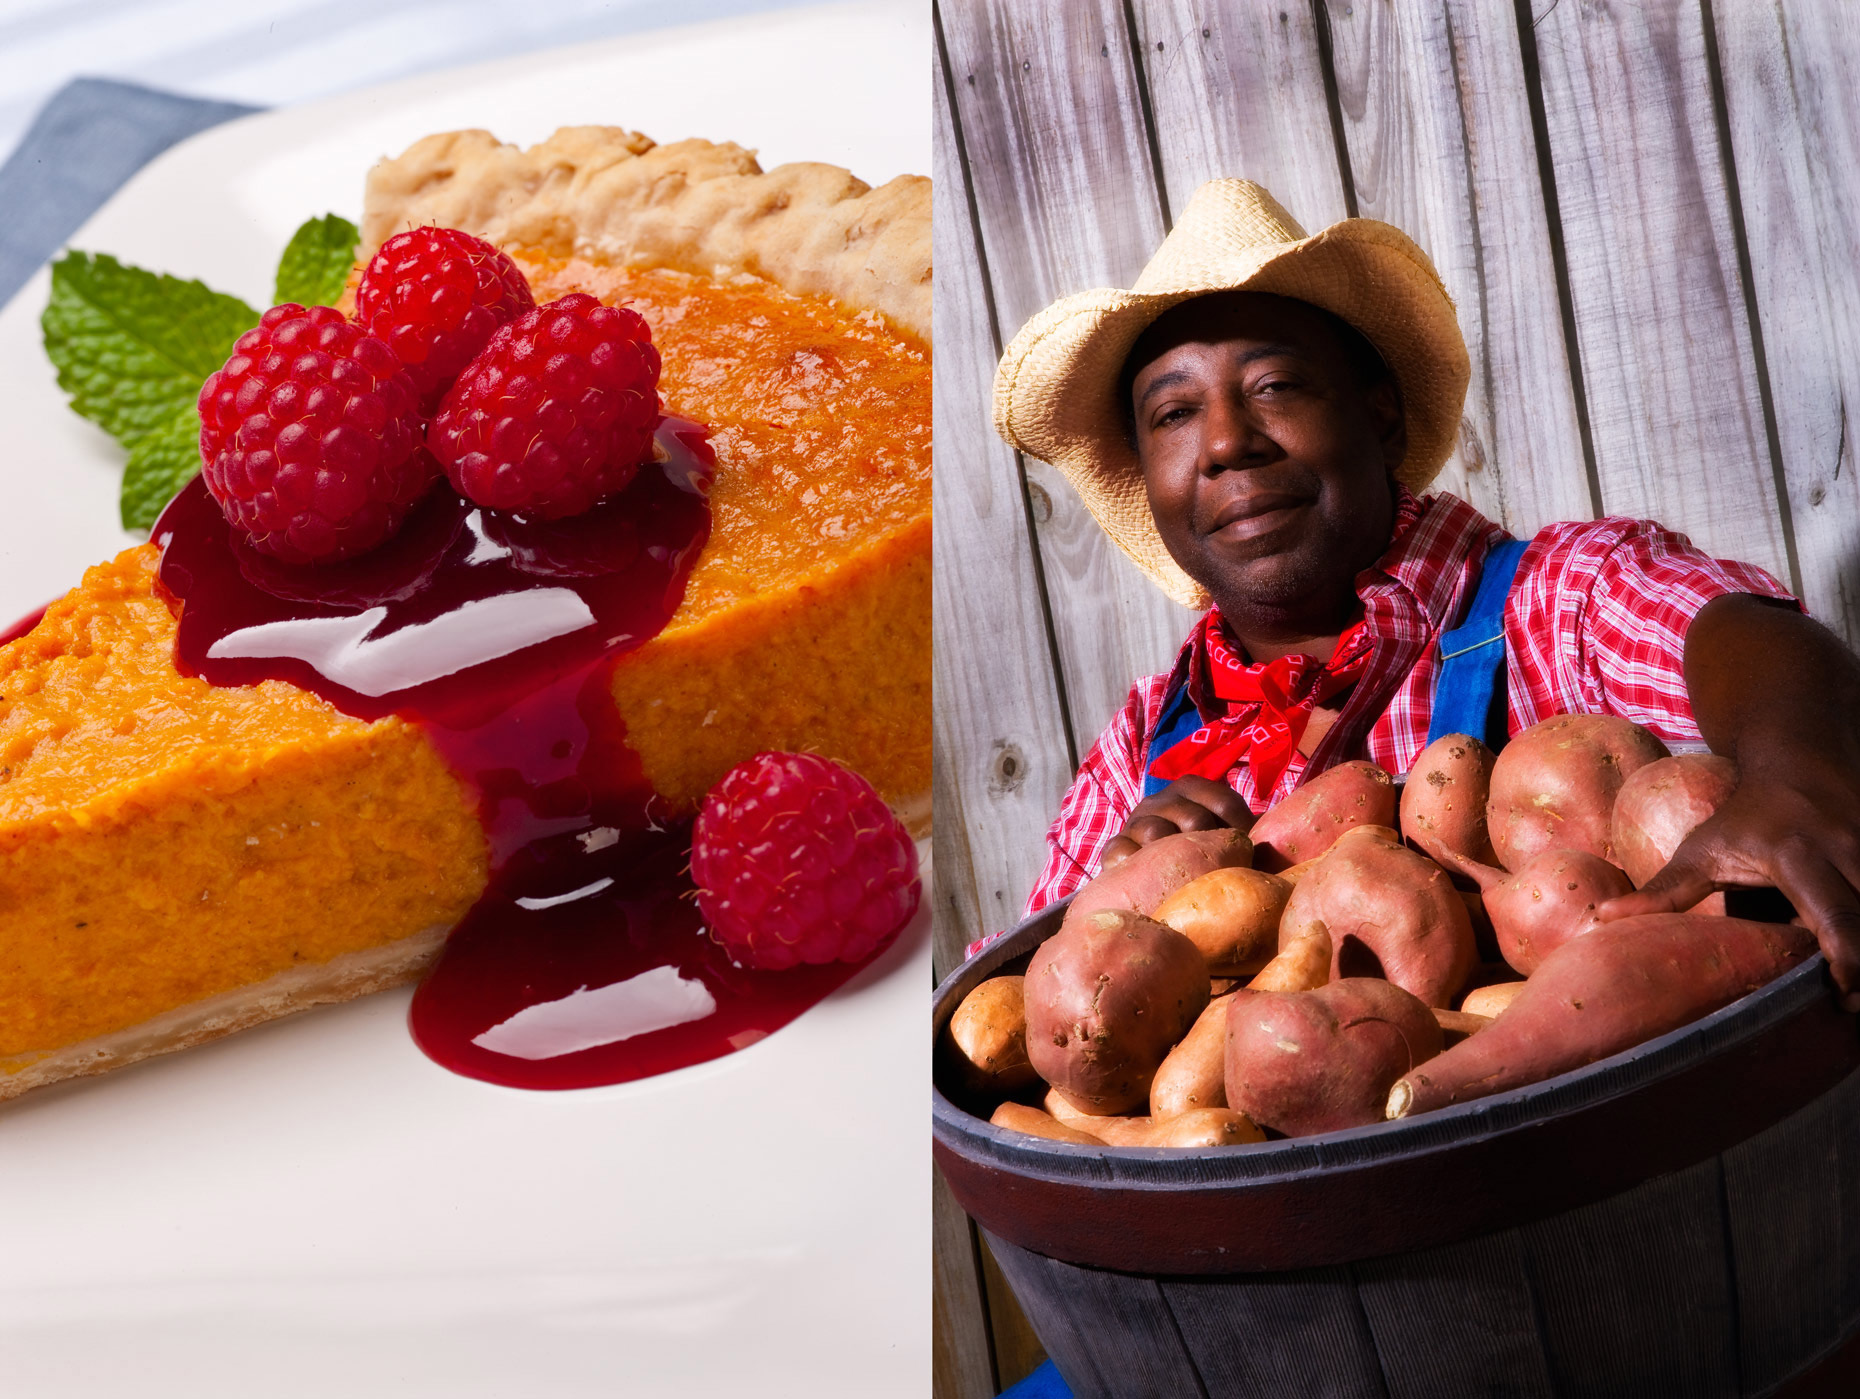 Lifestyle Photographer | Food Photographer|Sweet Potato Pie & Sweet Potato Farmer